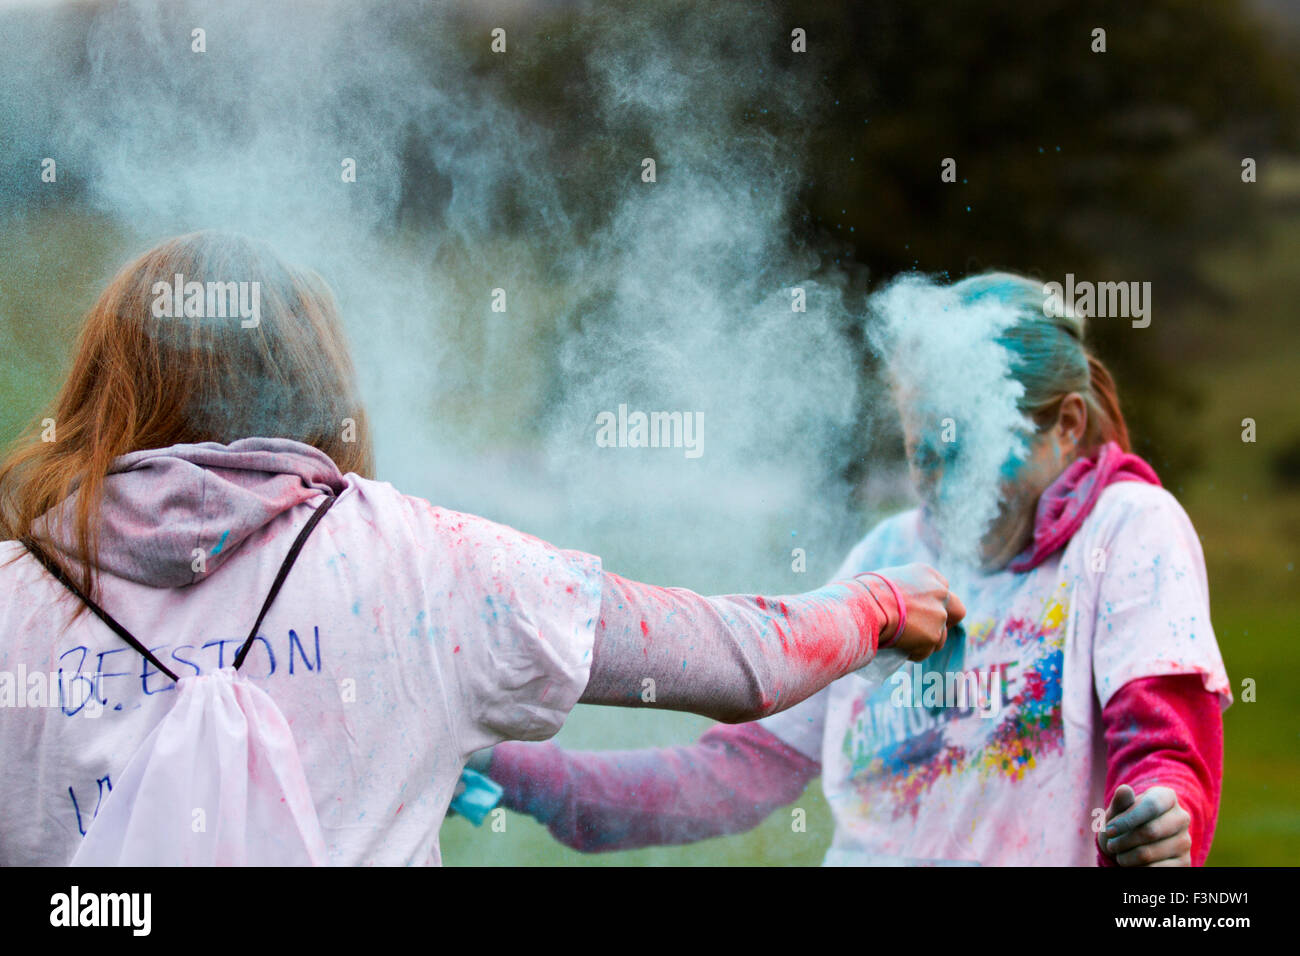 The world's most colourful 5k, 'Run or Dye'  at Chatsworth this autumn. As runners, walk, dance through the - Stock Image